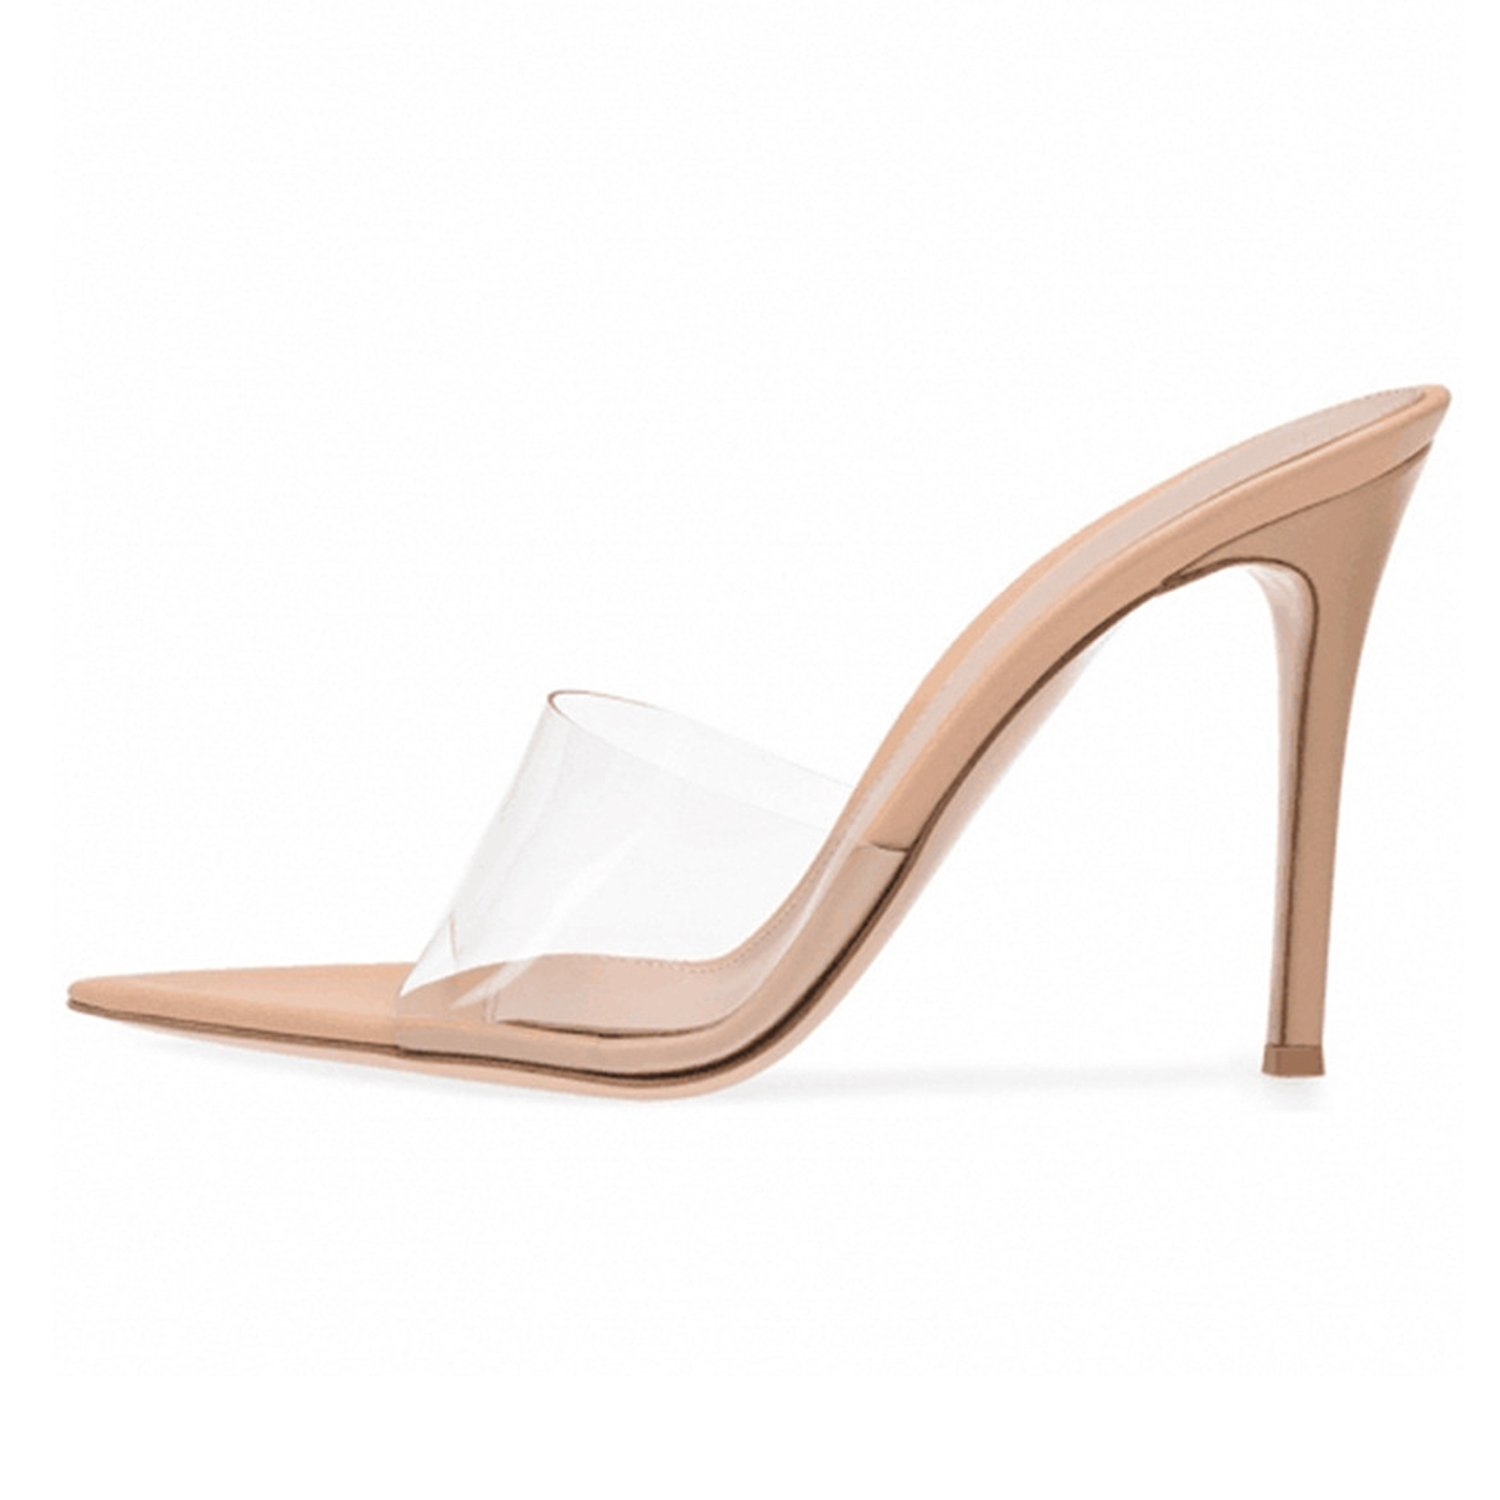 Transparent PVC Pointed Toe Sandals